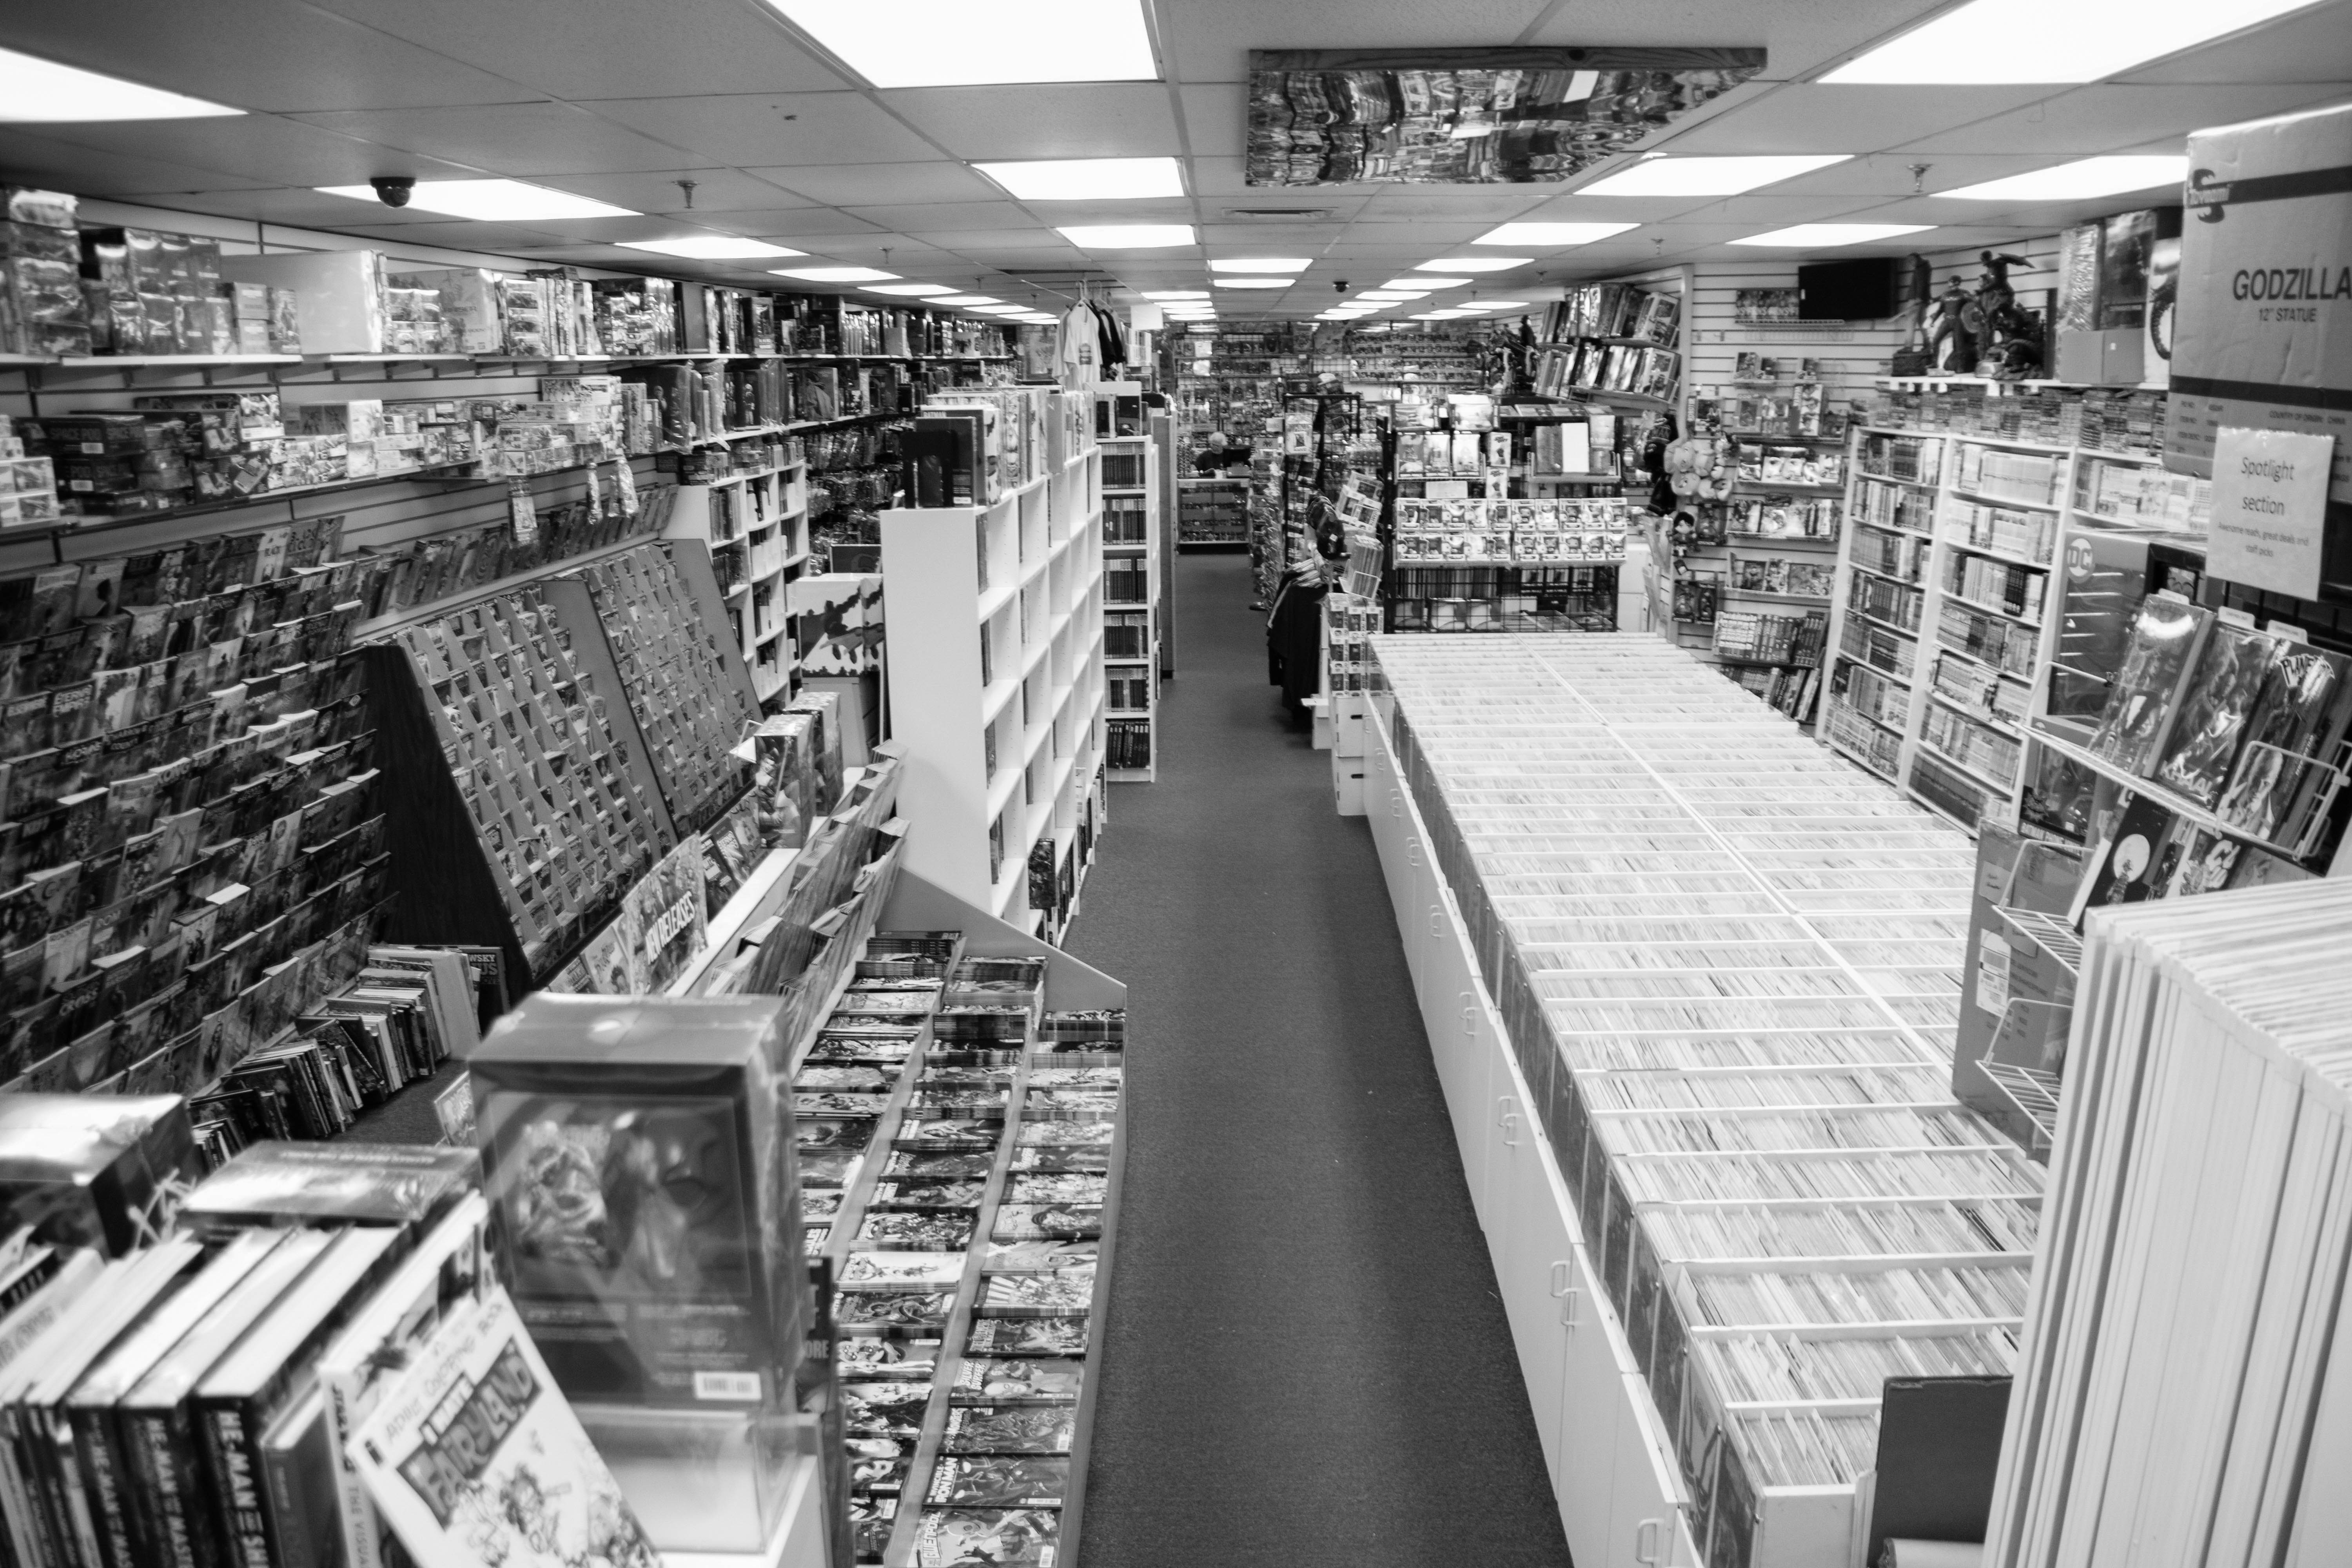 store photos back end b&w